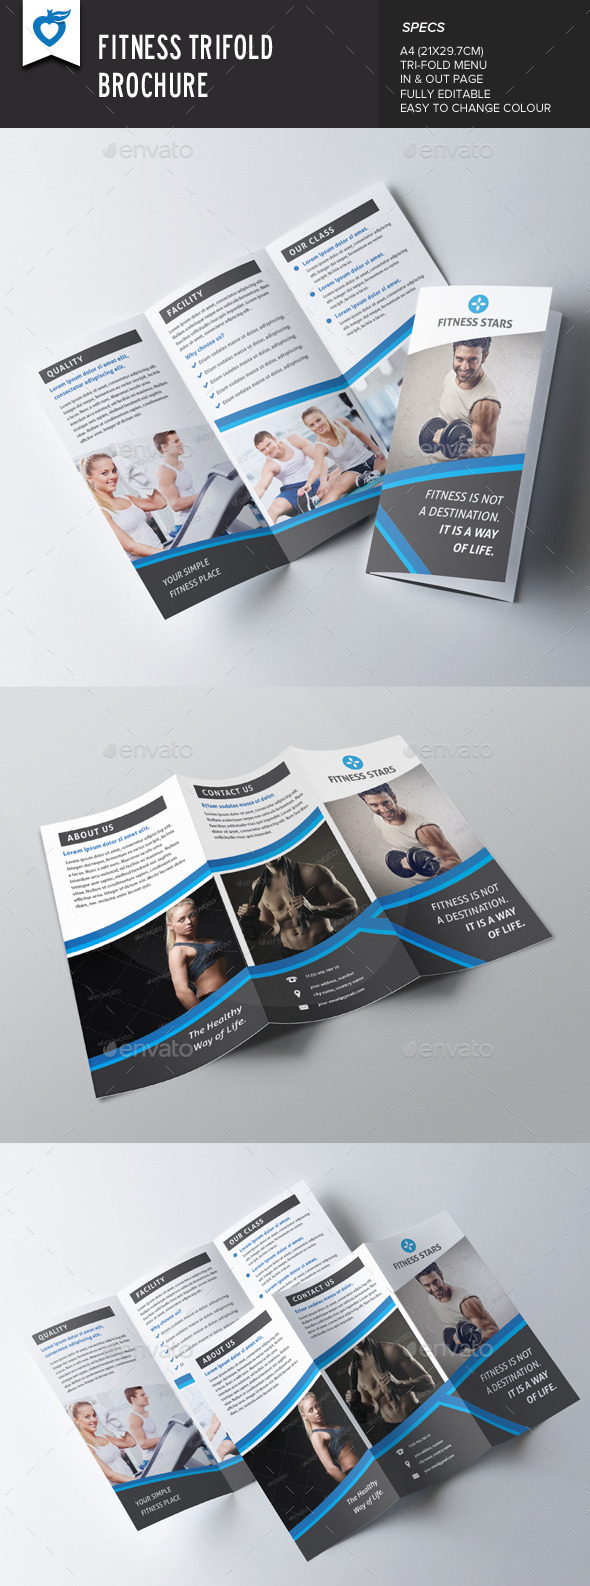 GraphicRiver Fitness Trifold Brochure 9480927